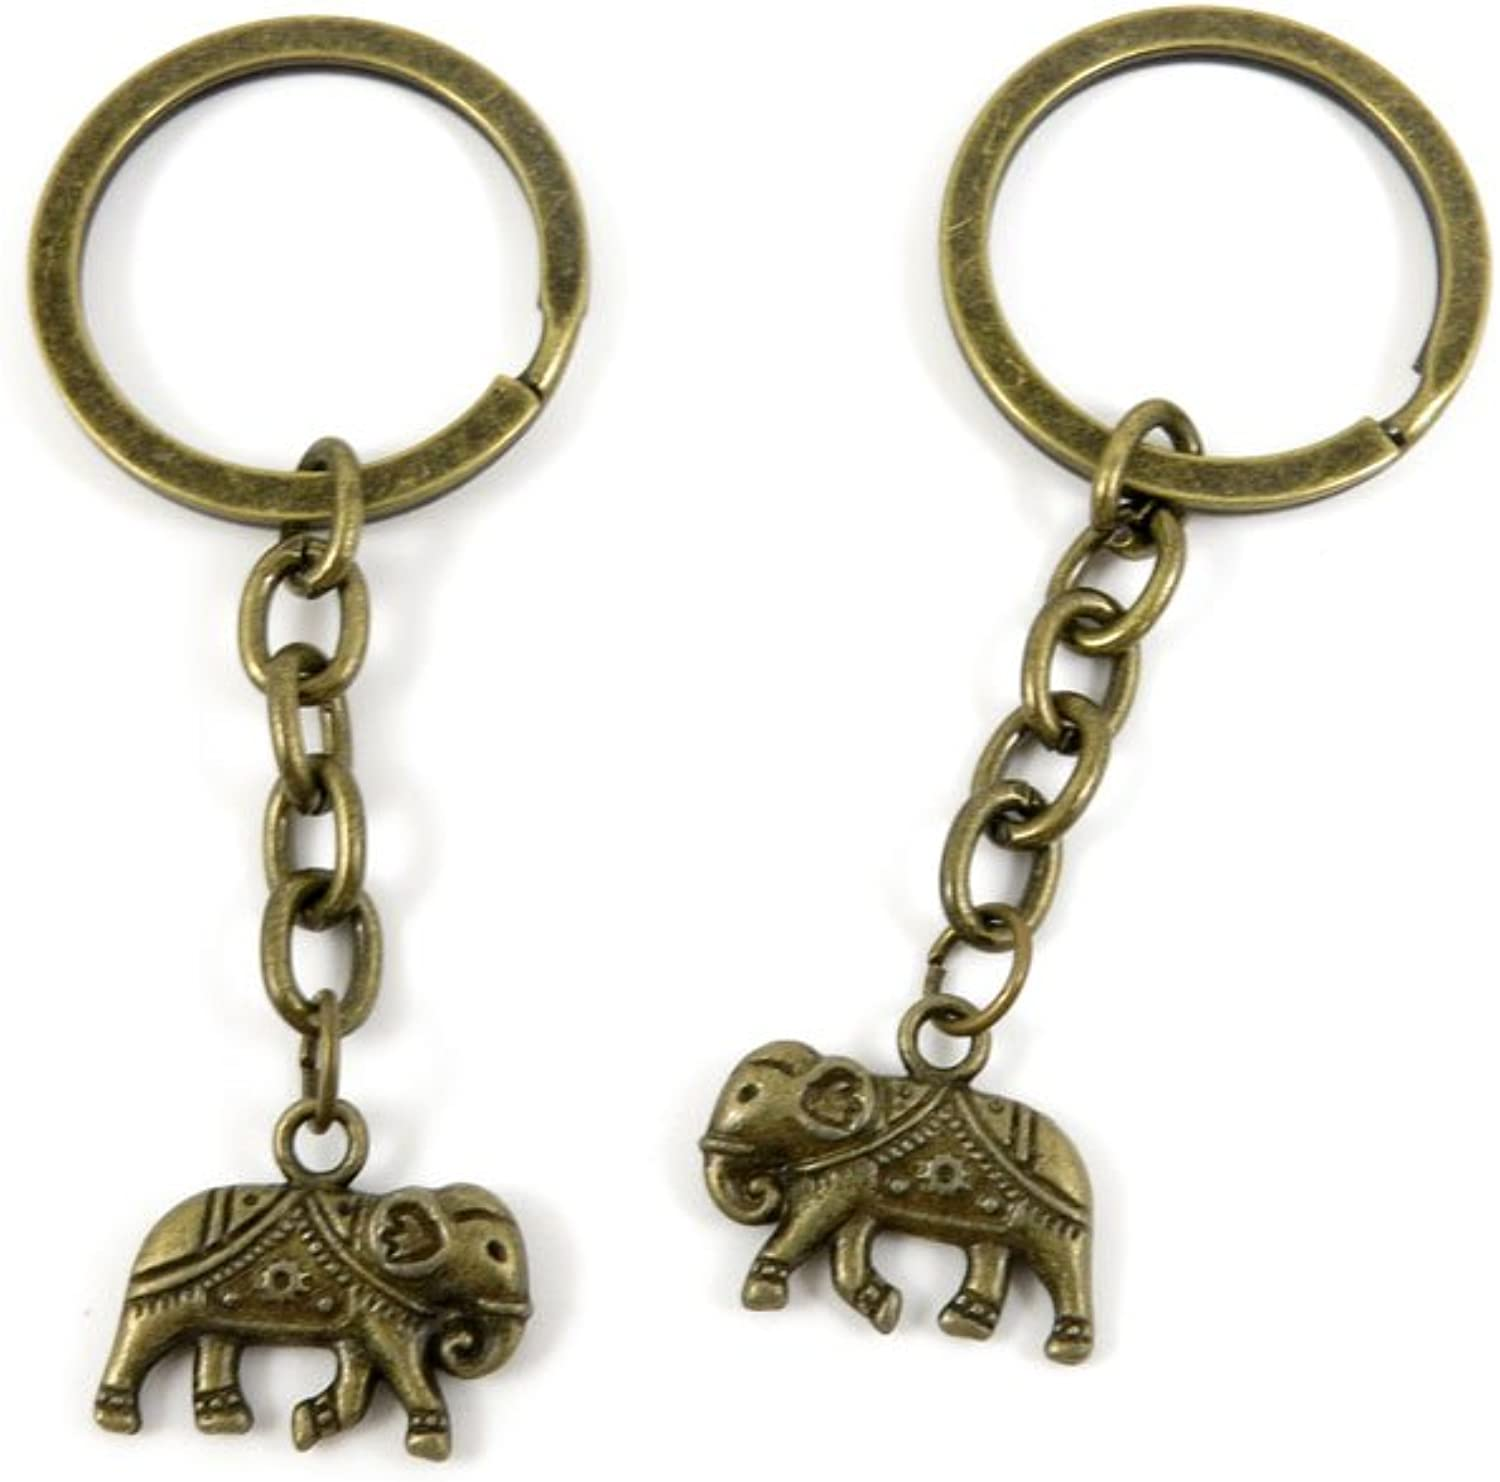 100 PCS Keyrings Keychains Key Ring Chains Tags Jewelry Findings Clasps Buckles Supplies L5YB6 Thai Elephant